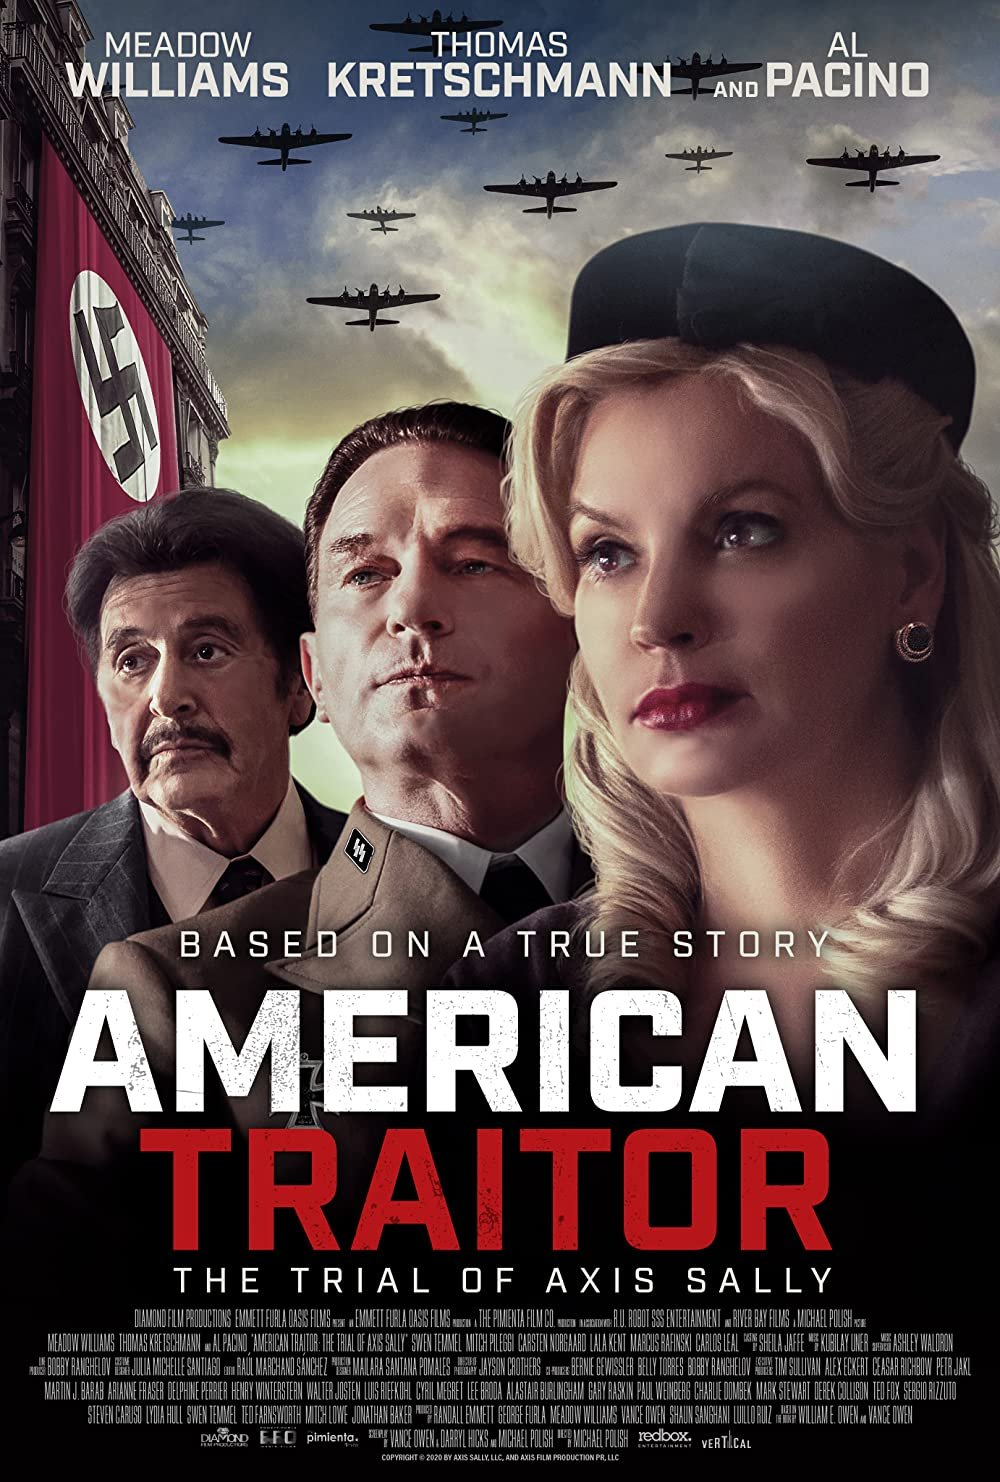 American Traitor: The Trial of Axis Sally poster image